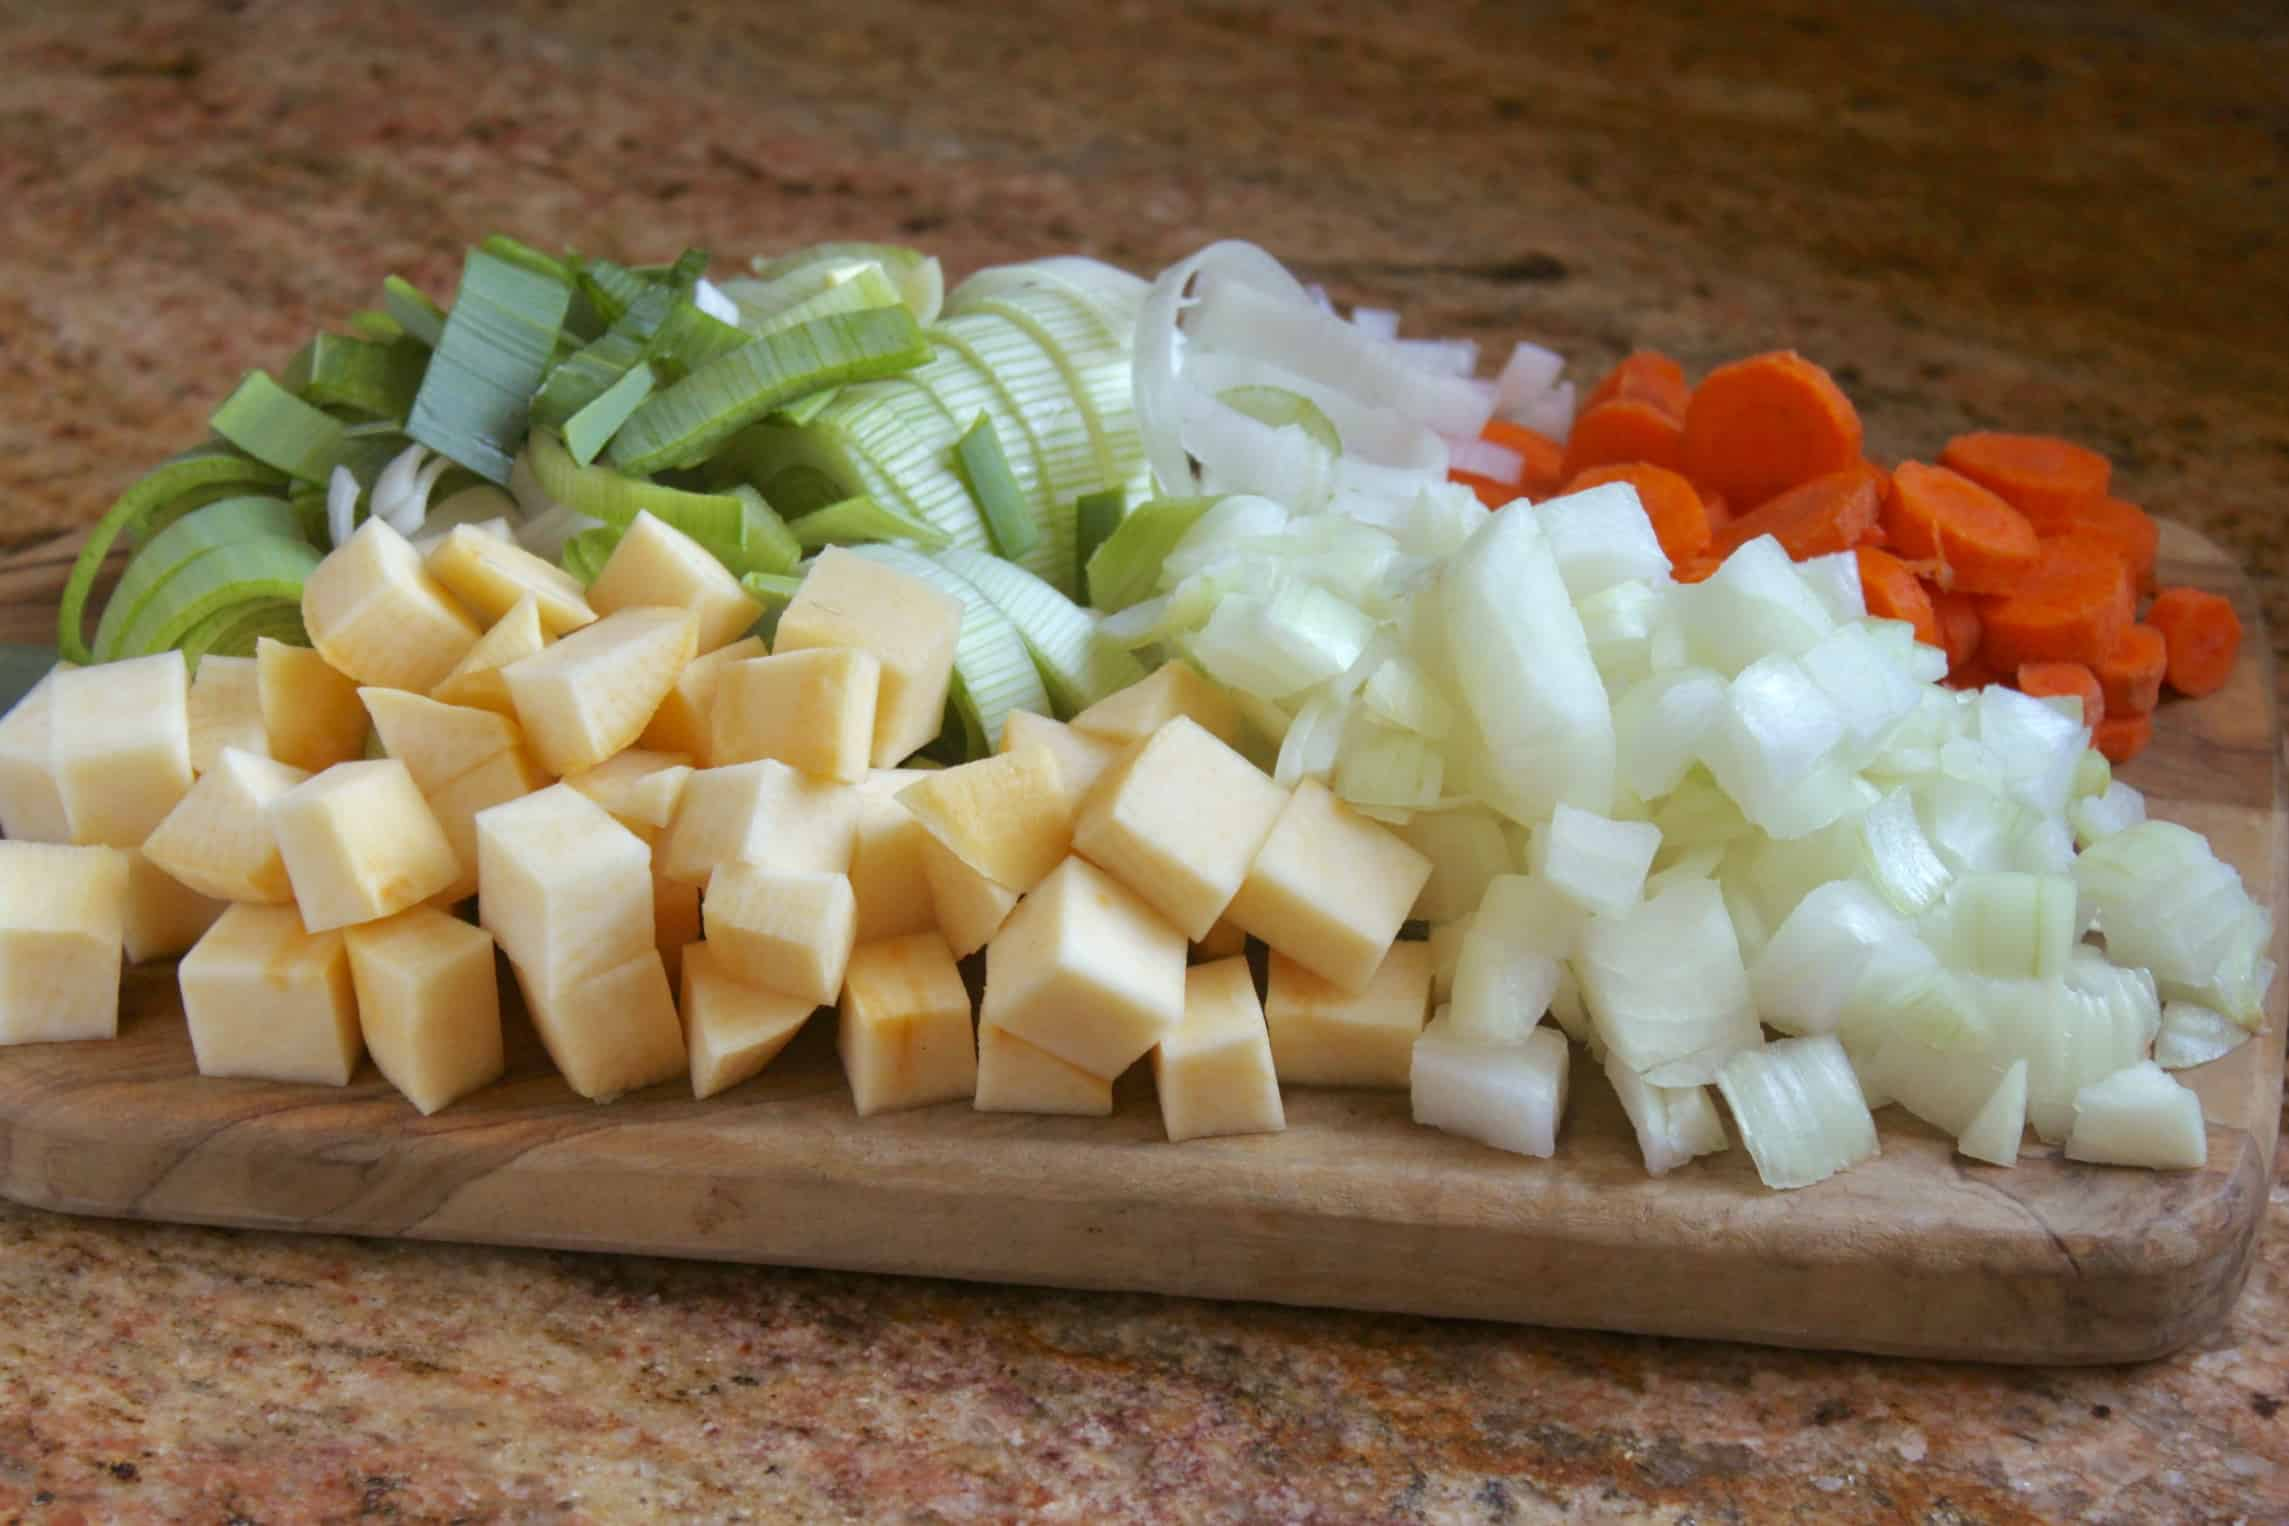 rutabaga, leeks, onion and carrots on a board